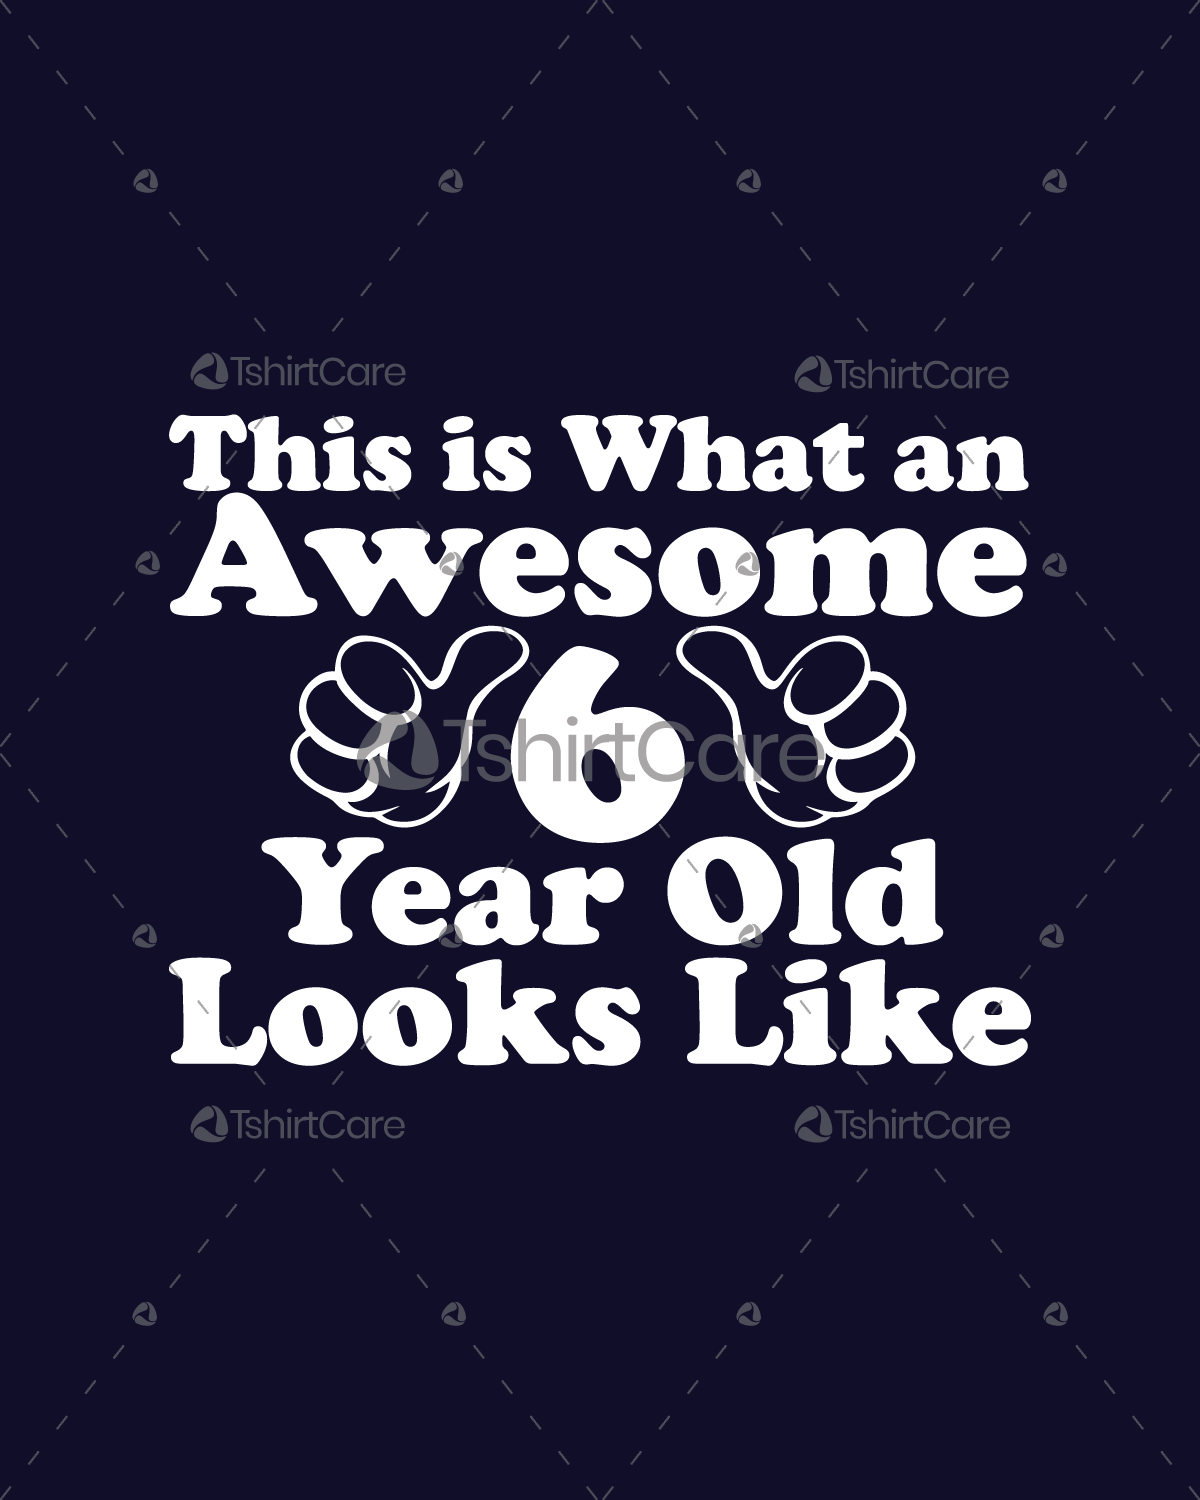 This Is What An Awesome 6 Year Old Looks Like T Shirt Design For Birthday